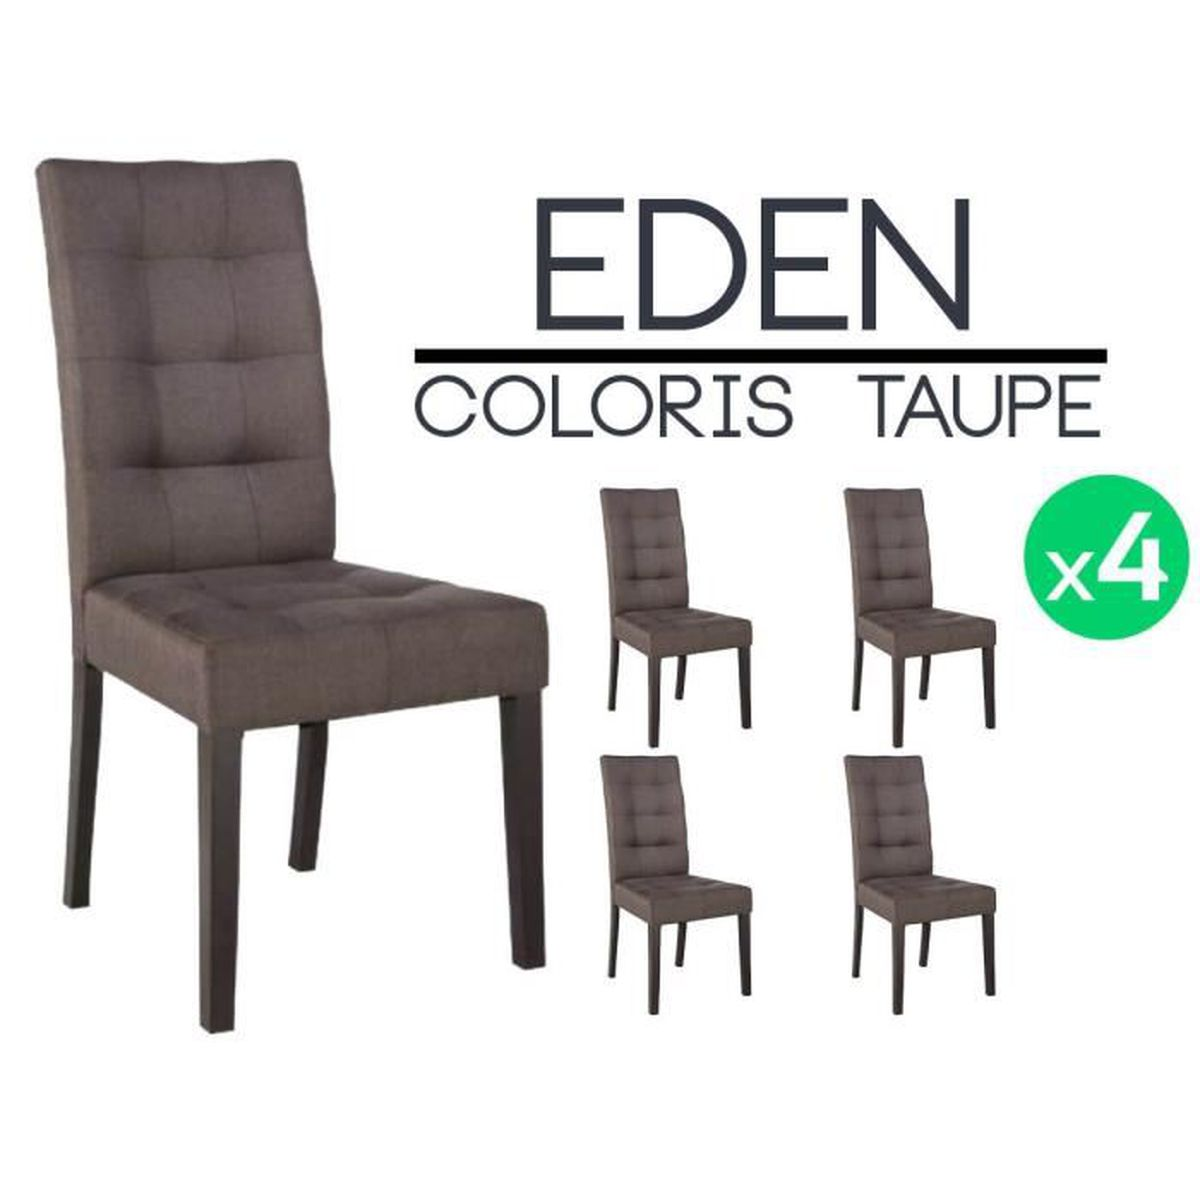 chaise eden achat vente chaise eden pas cher cdiscount. Black Bedroom Furniture Sets. Home Design Ideas